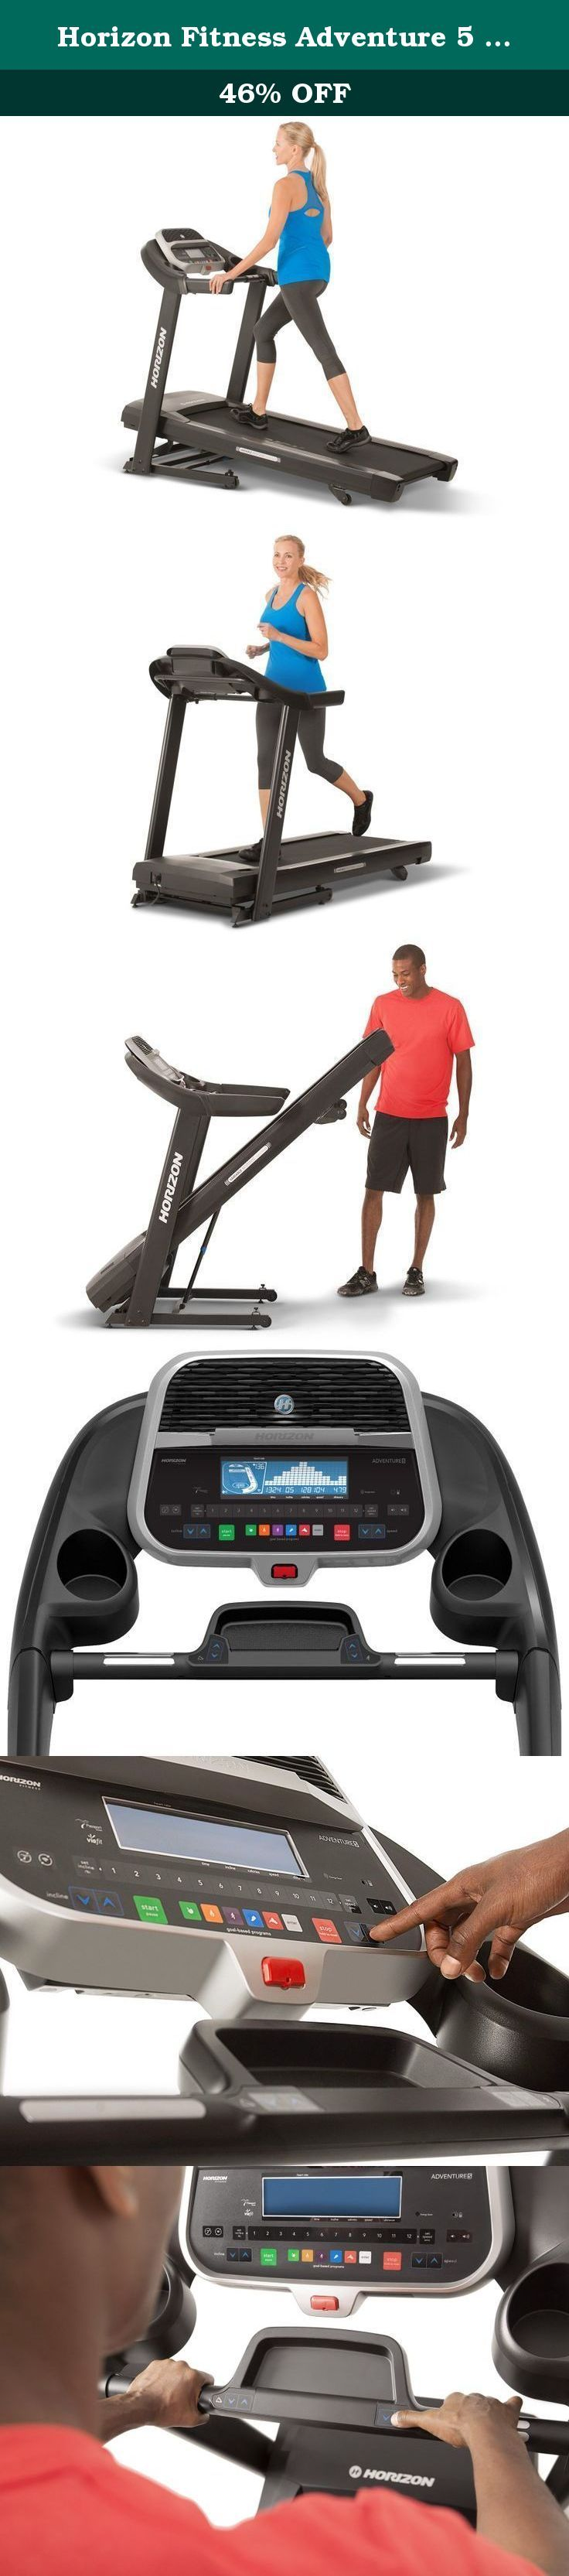 Horizon Fitness Adventure 5 Treadmill. Built for performance, the Horizon Fitness Adventure 5 has an extra-long deck, a quiet yet responsive motor and ViaFit connectivity, giving you more control over your workouts and your training progress.